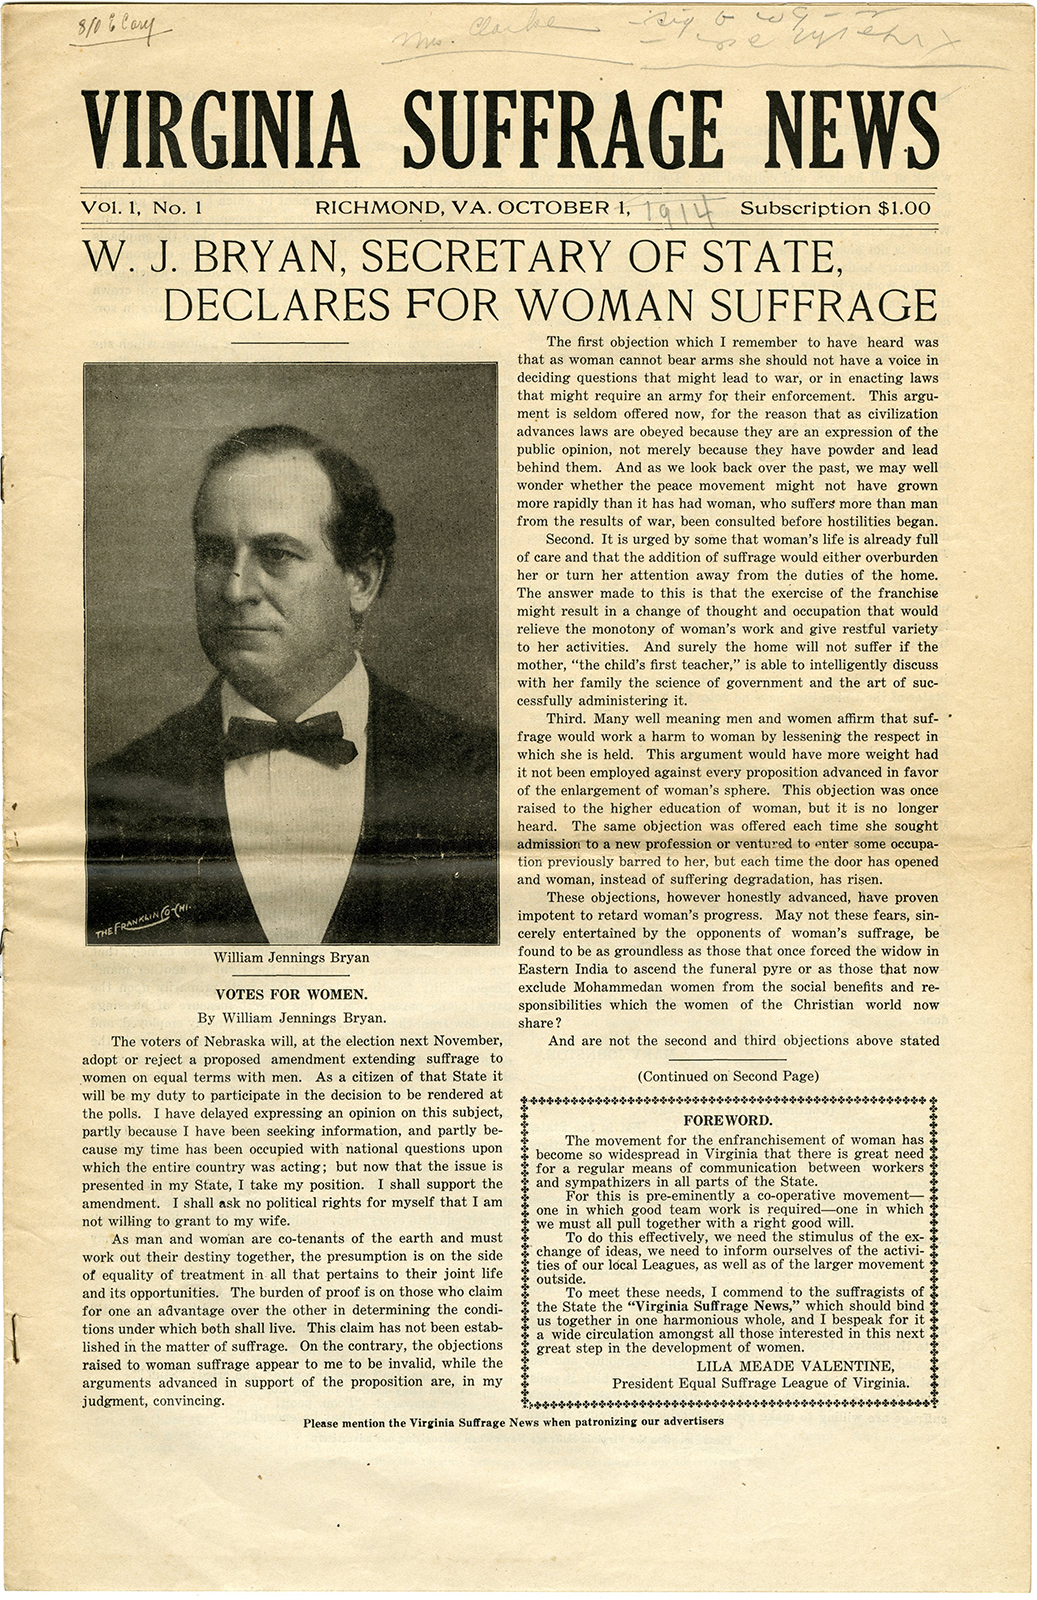 VCU_M9 B56 Virginia Suffrage News Oct 1 1914 p1 rsz.jpg